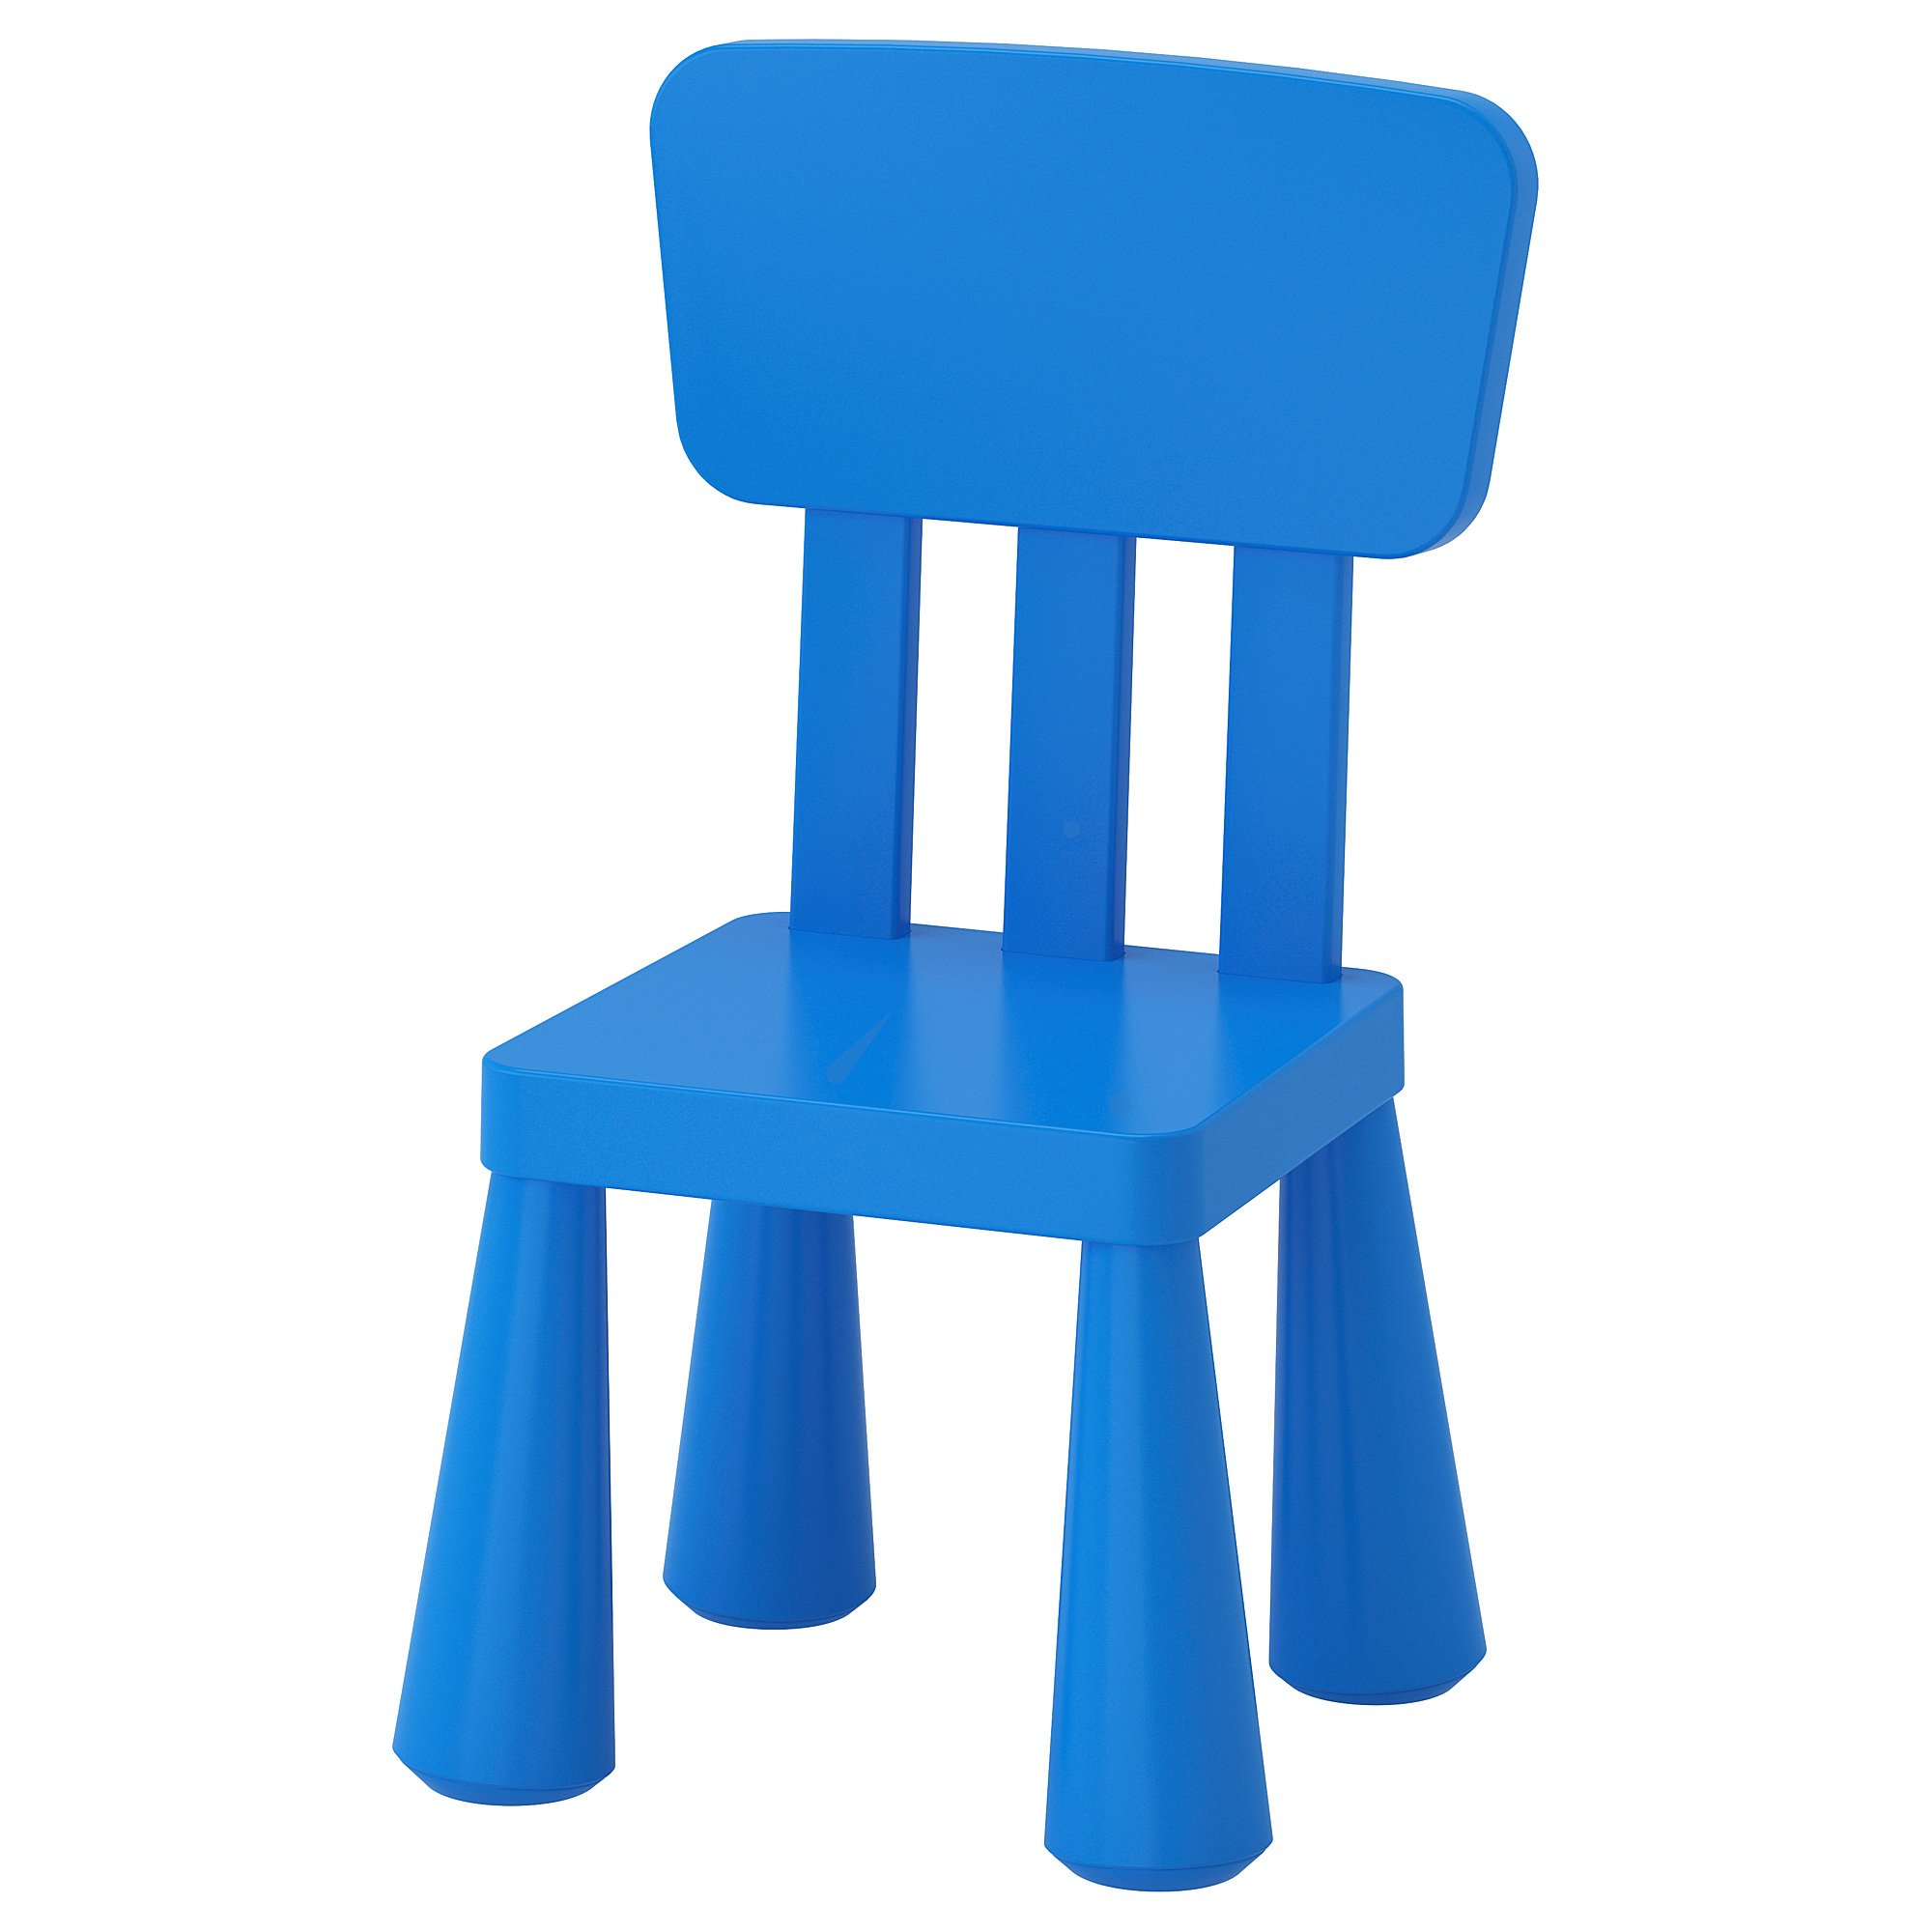 Ikea Mammut Kids Indoor / Outdoor Children's Chair, Blue Color - 2 Pack by IKEA (Image #3)